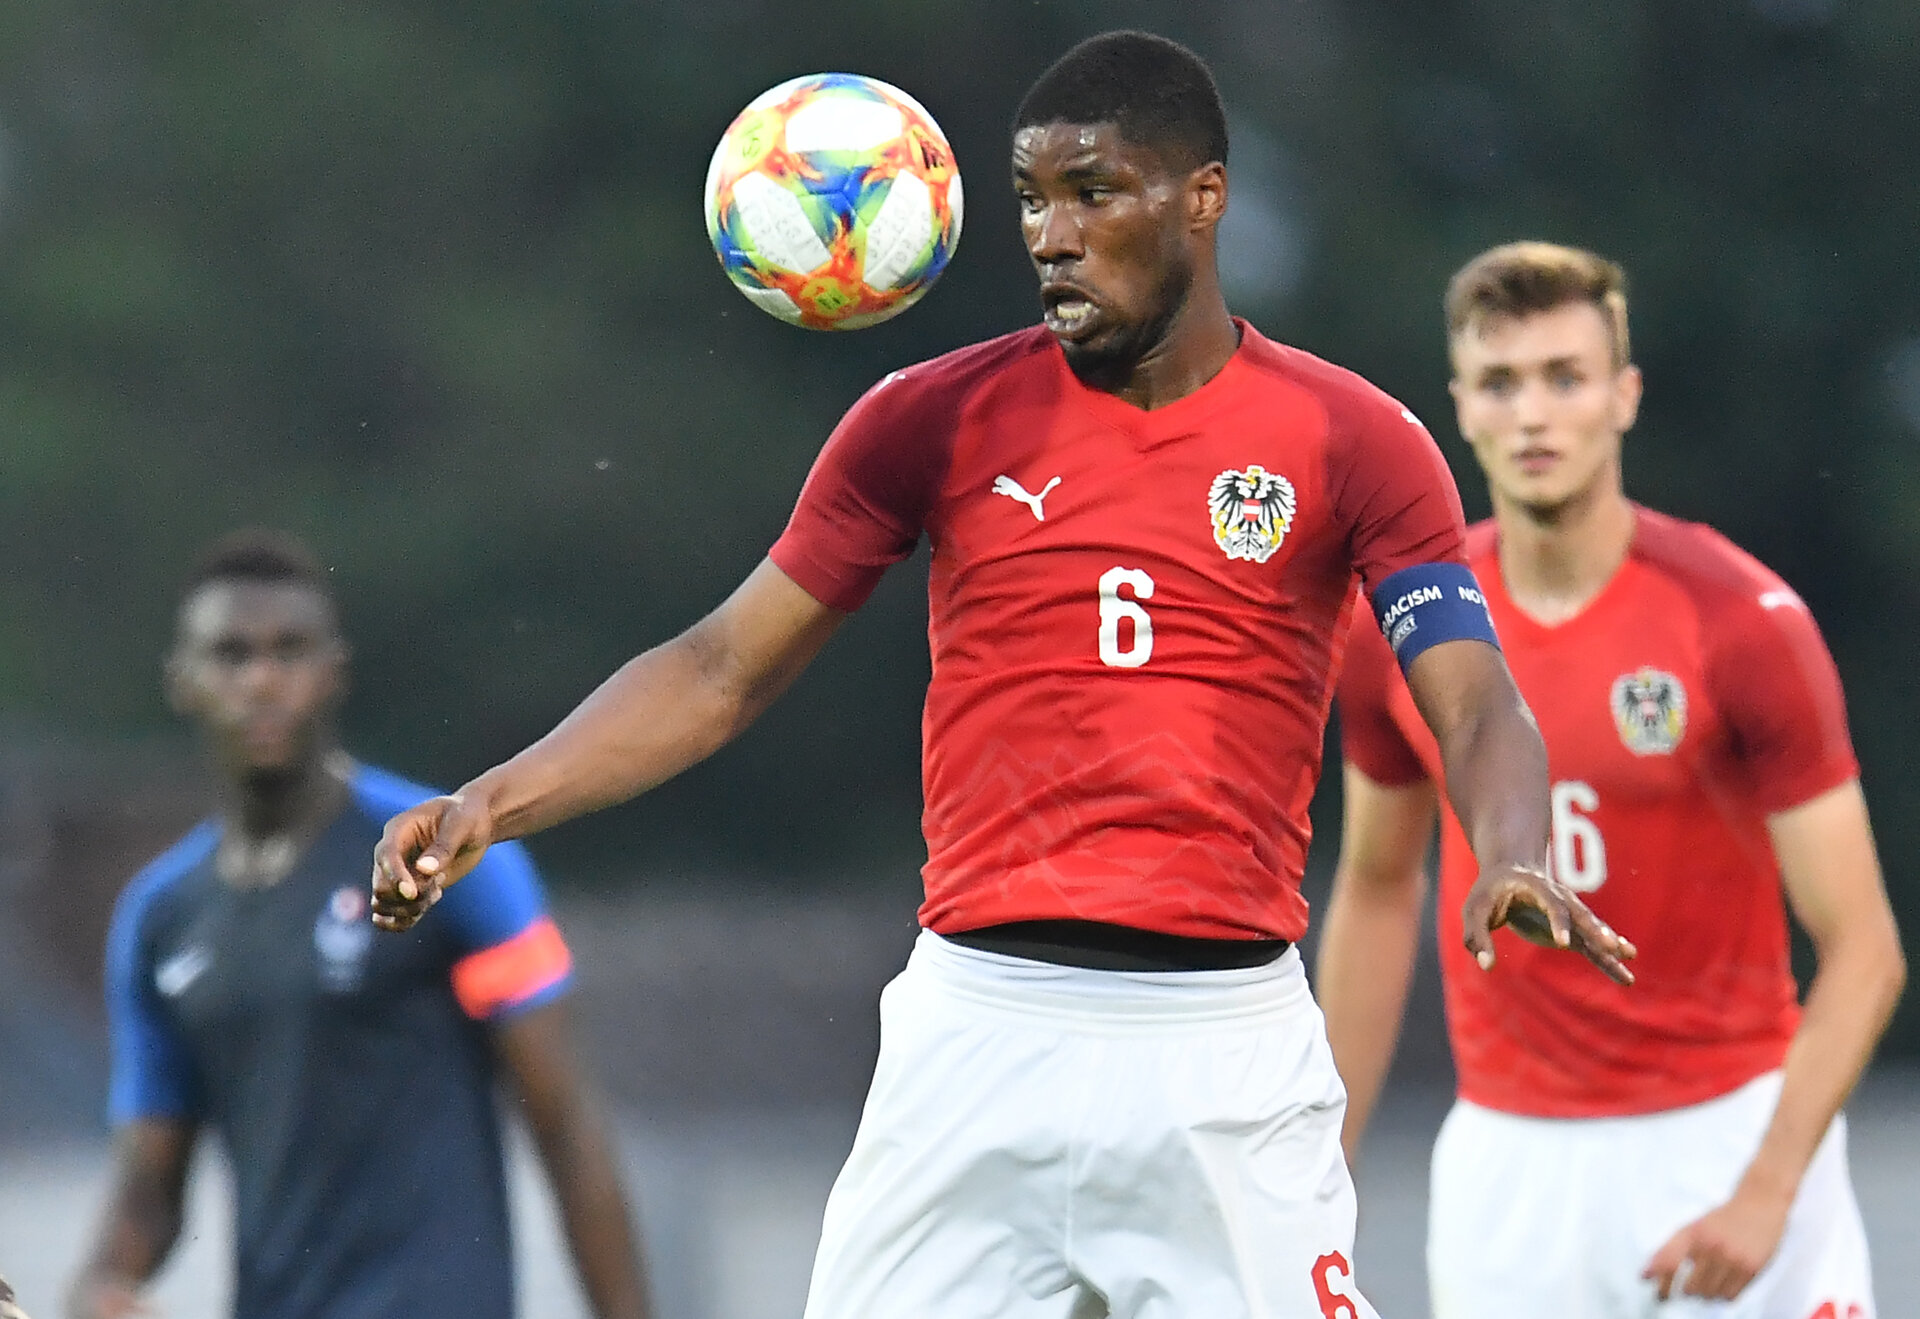 Austria's midfielder Kevin Danso eyes a ball during the U21 friendly football match between Austria and France in Hartberg, Austria, on June 11, 2019. (Photo by JOE KLAMAR / AFP)        (Photo credit should read JOE KLAMAR/AFP/Getty Images)